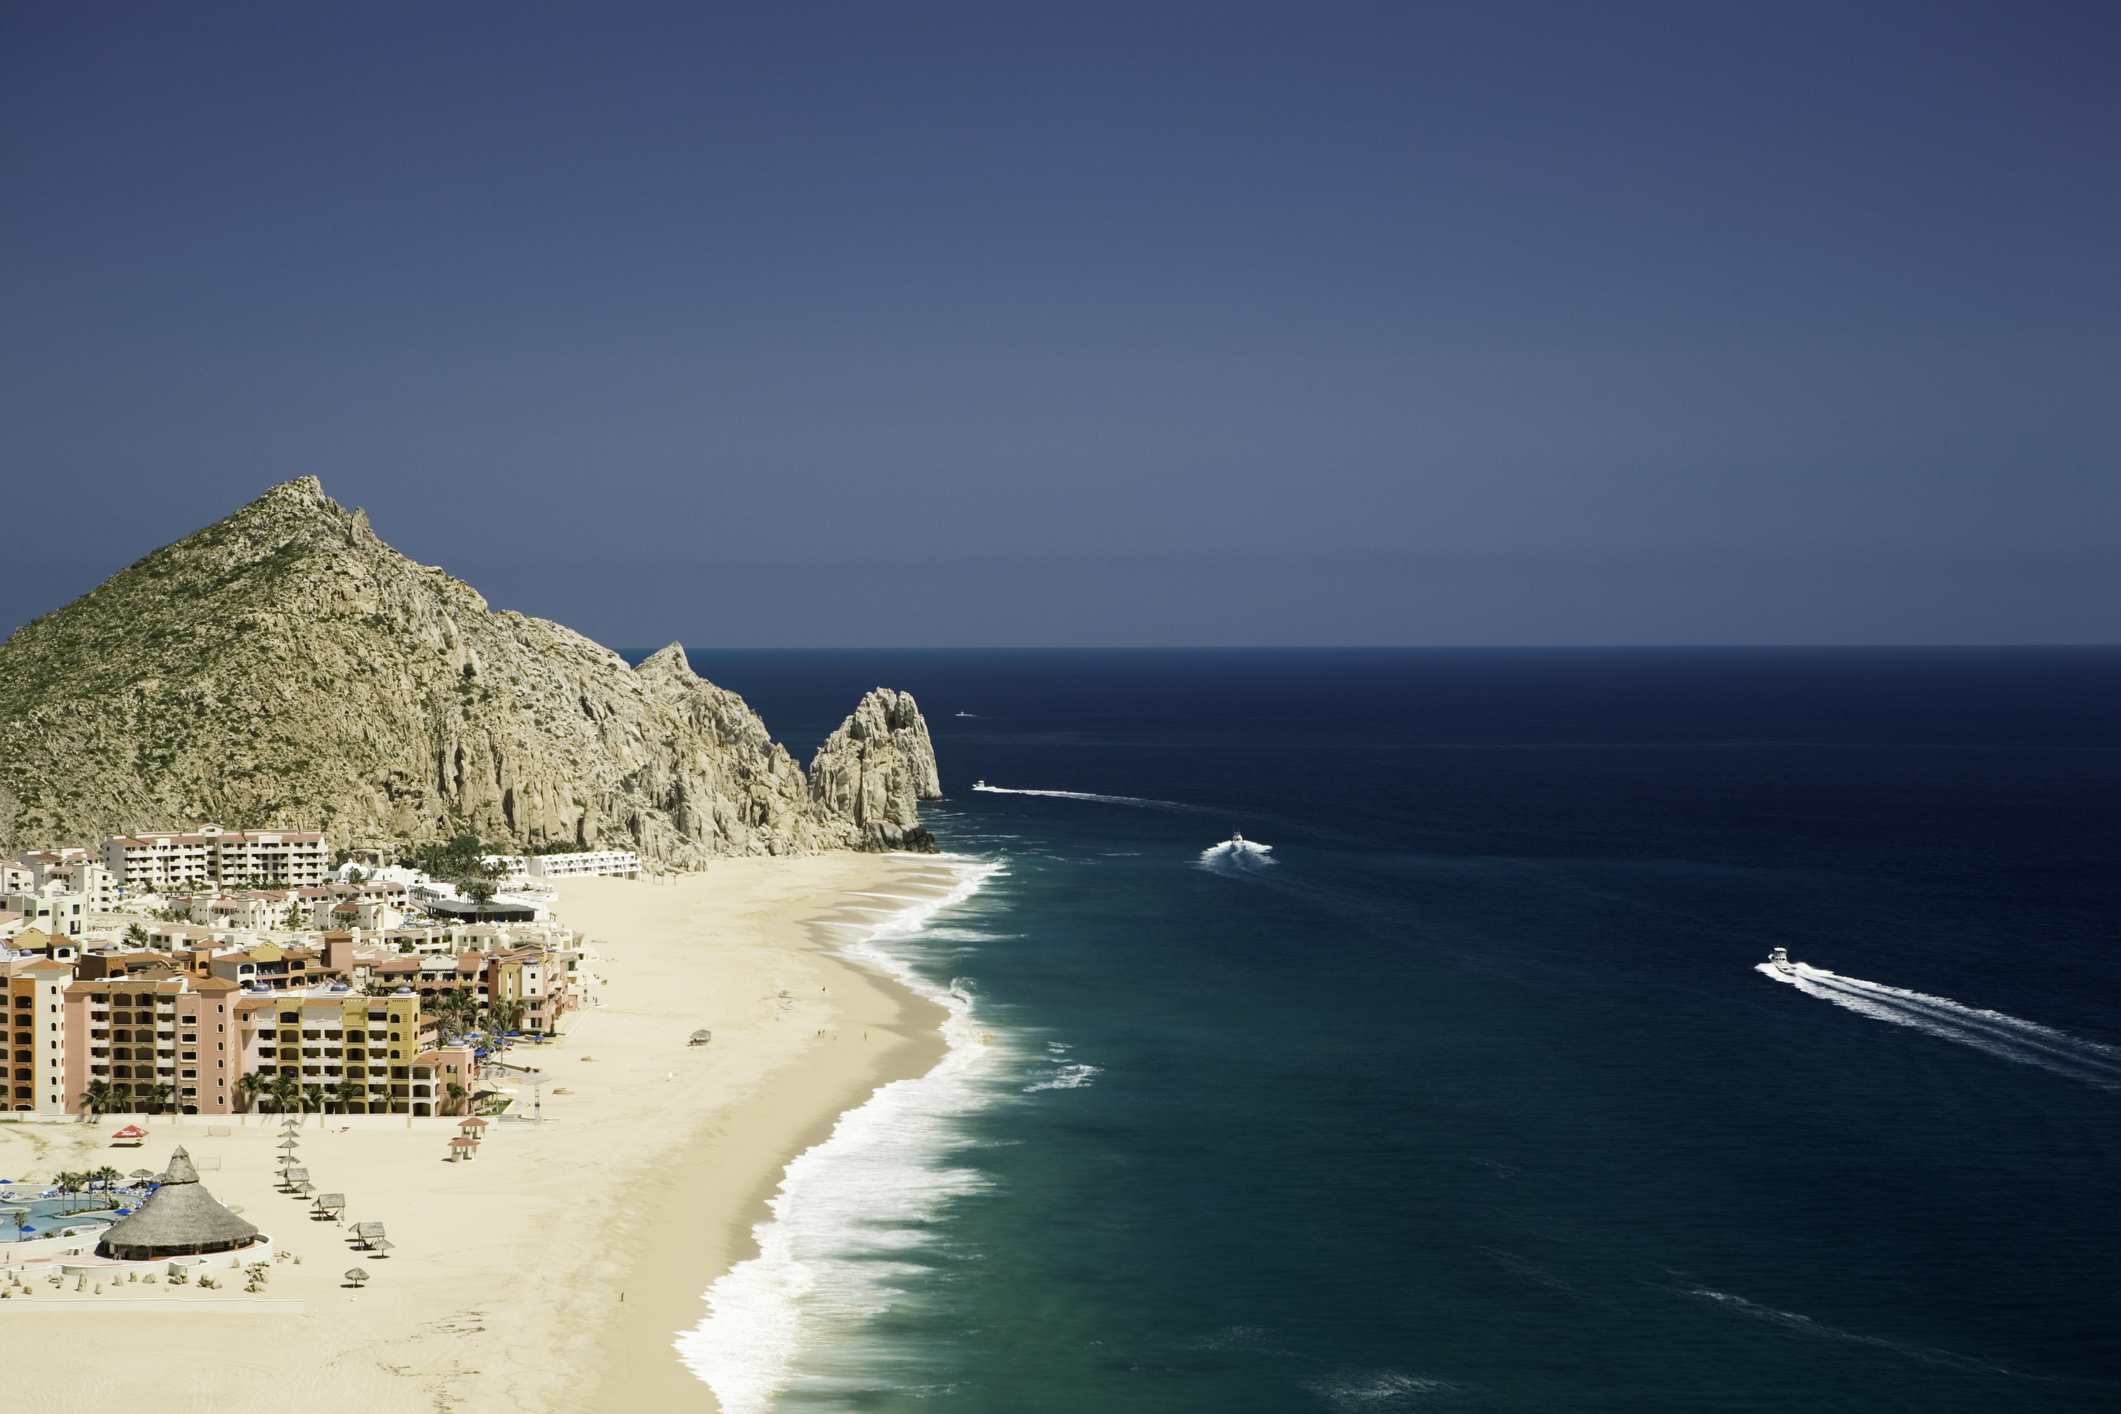 An elevated view of Mexico, Baja, Cabo San Lucas, resorts on beach